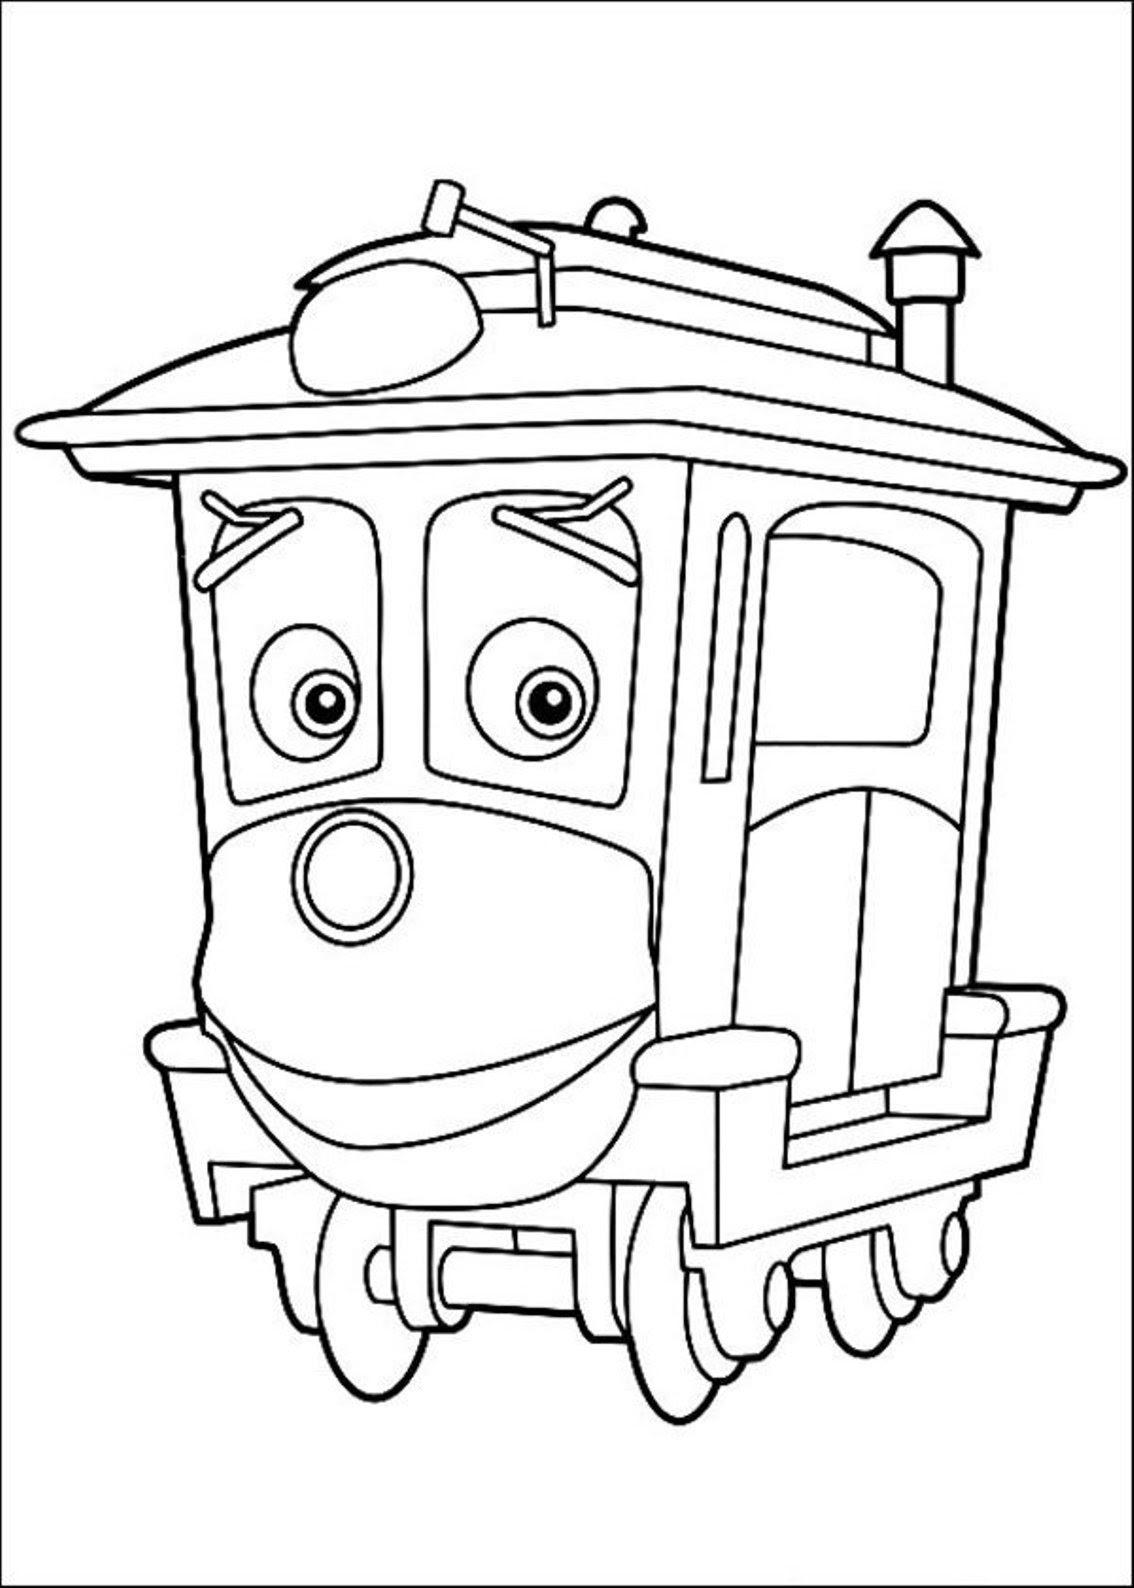 5600 Chuggington Coloring Pages To Print Pictures